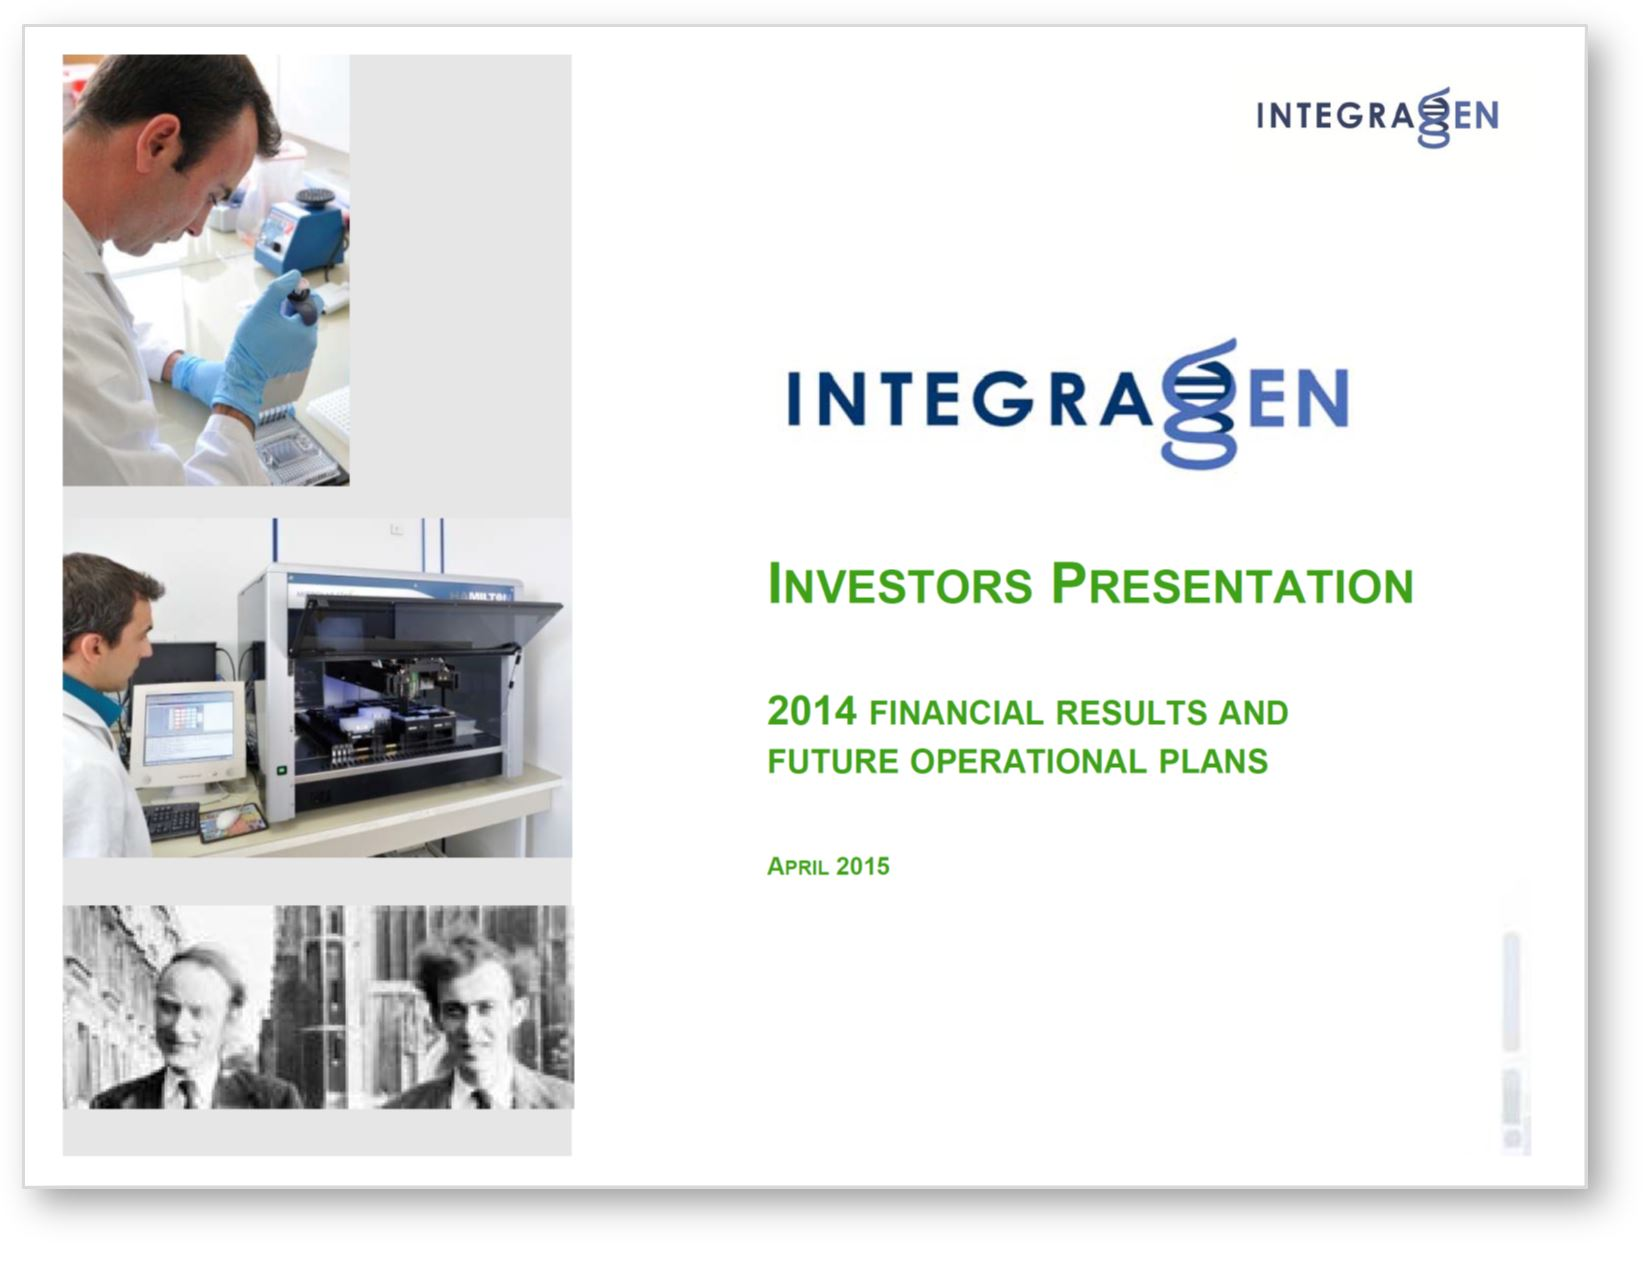 Integragen investor presentation april 2015 english